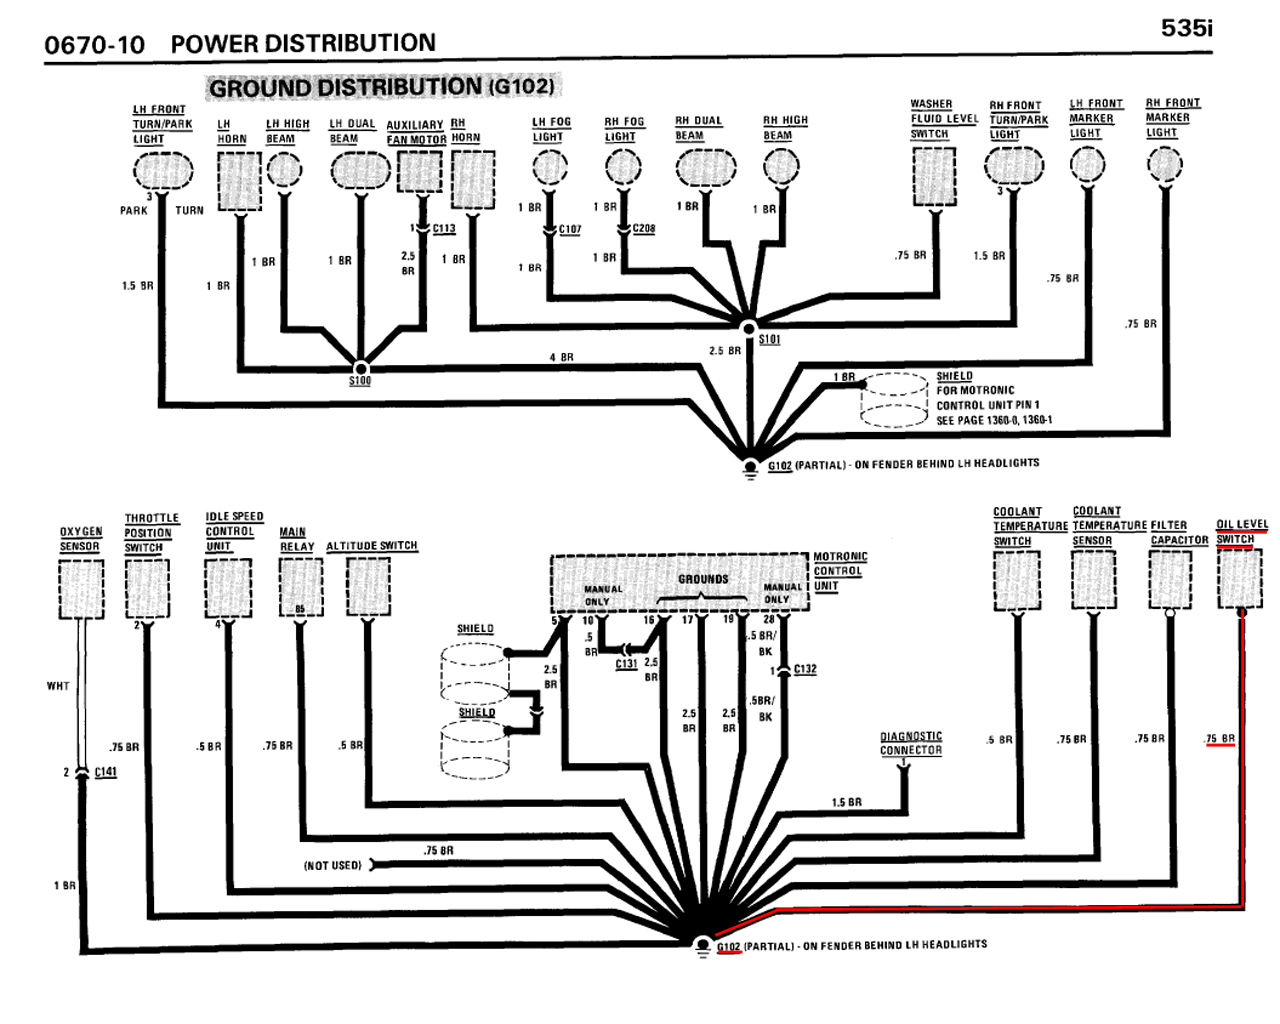 M30 b34/b35 oil level sensor wire diagram help? • MyE28.com